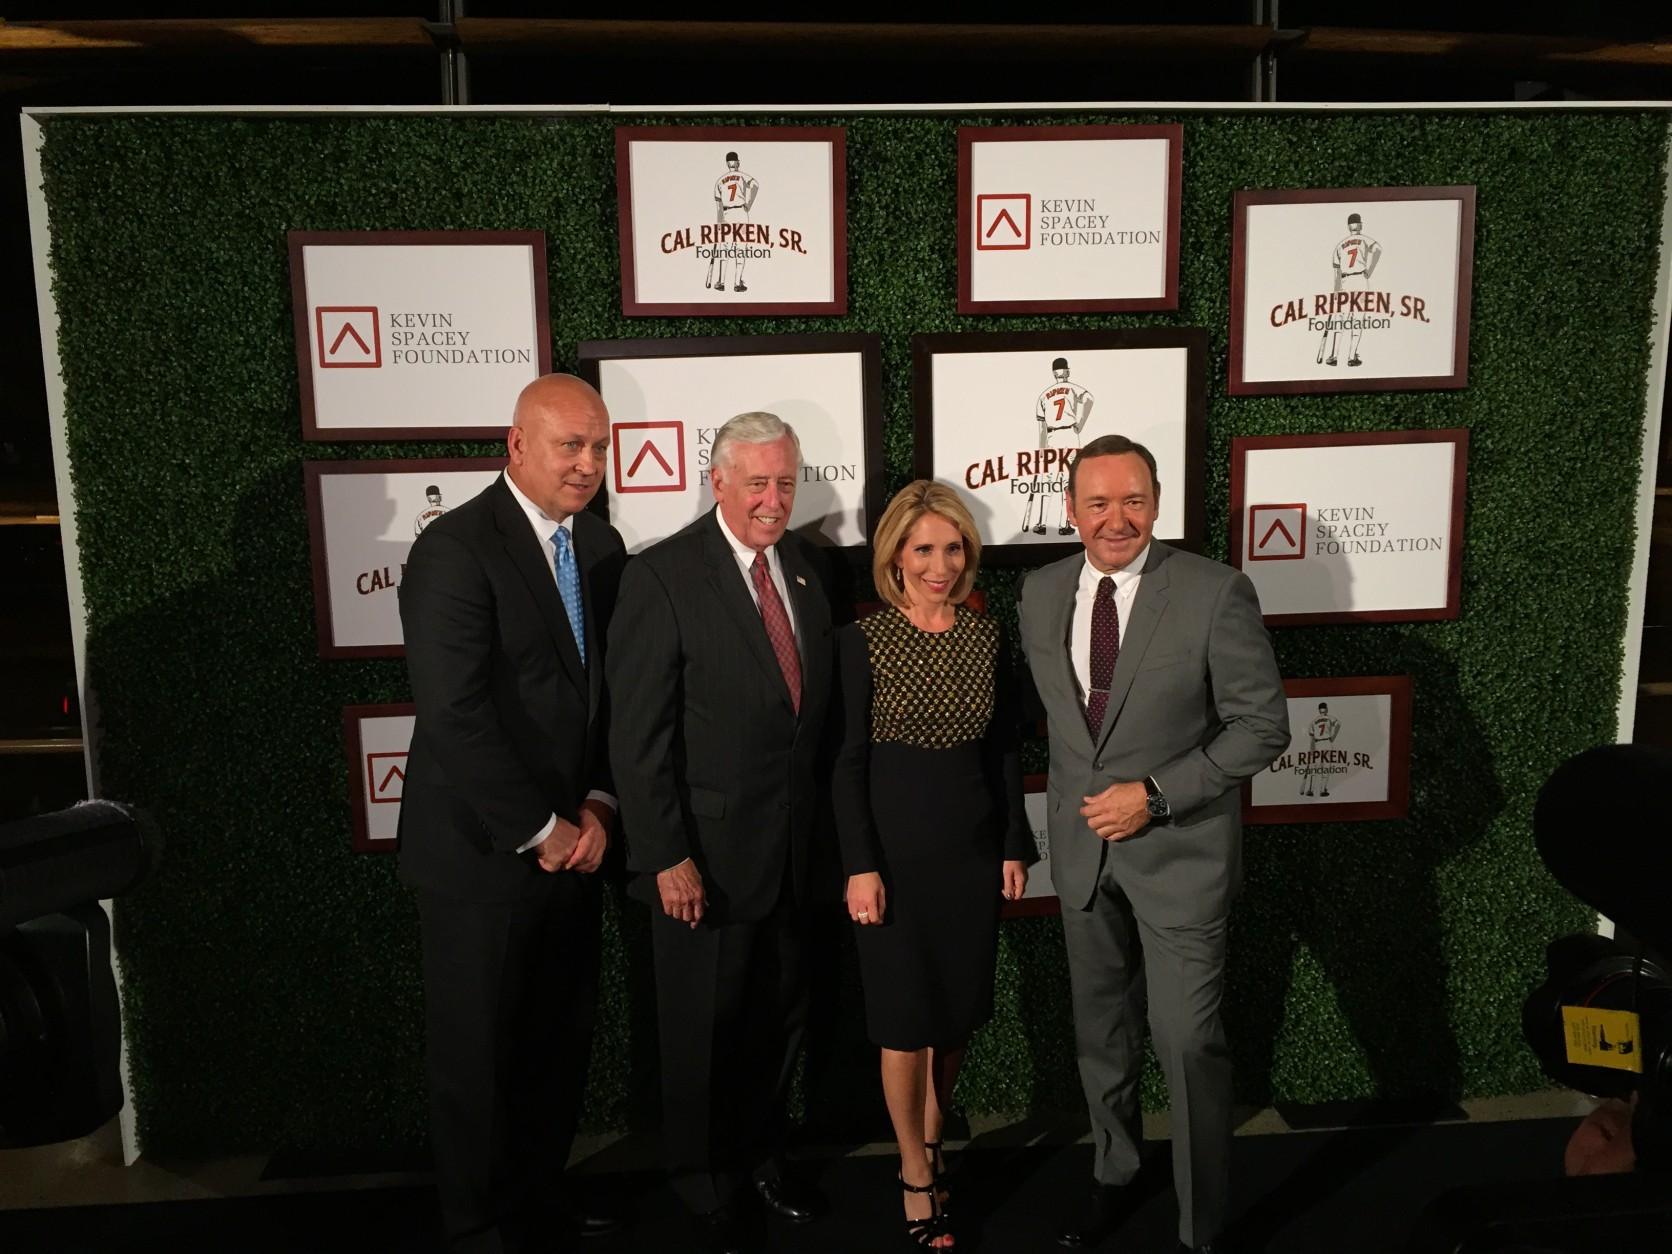 Cal Ripken, Jr., Congressman Steny Hoyer, CNN's Dana Bash -- who hosted the event -- and Kevin Spacey are seen here at the Monday night event. (WTOP/Michelle Basch)